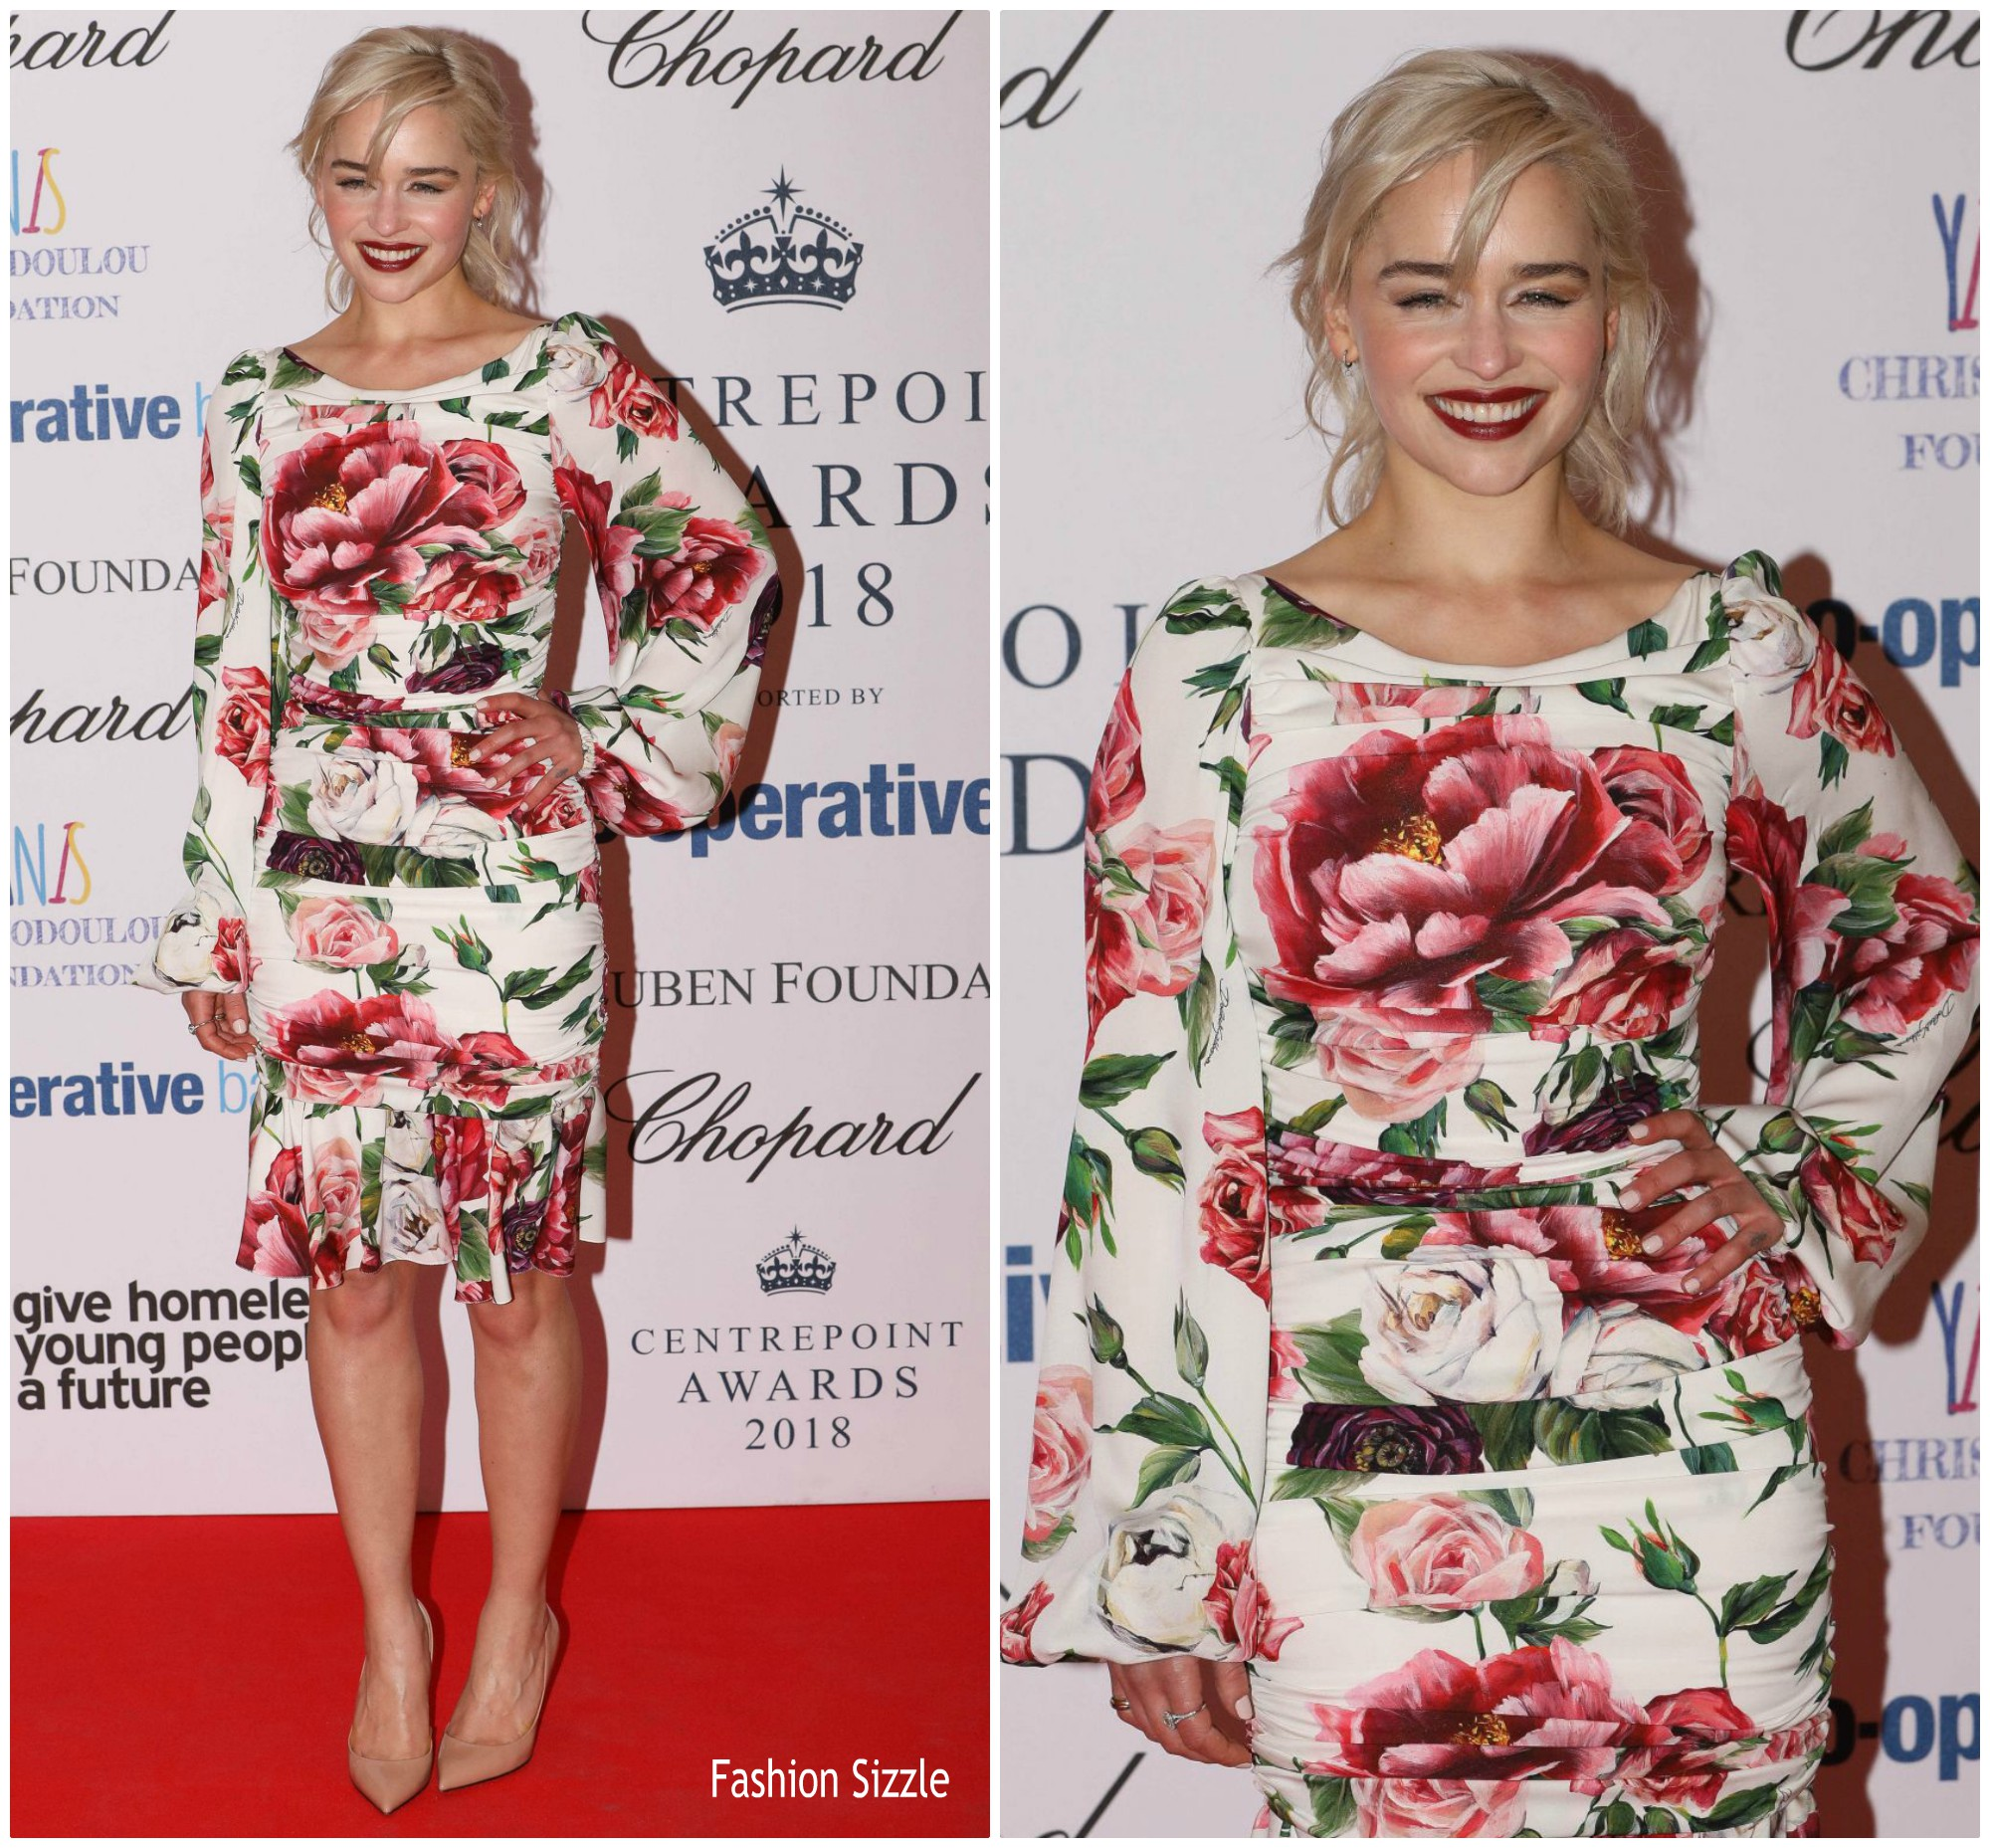 emilia-clarke-in-dolce-gabbana-the-centrepoint-awards